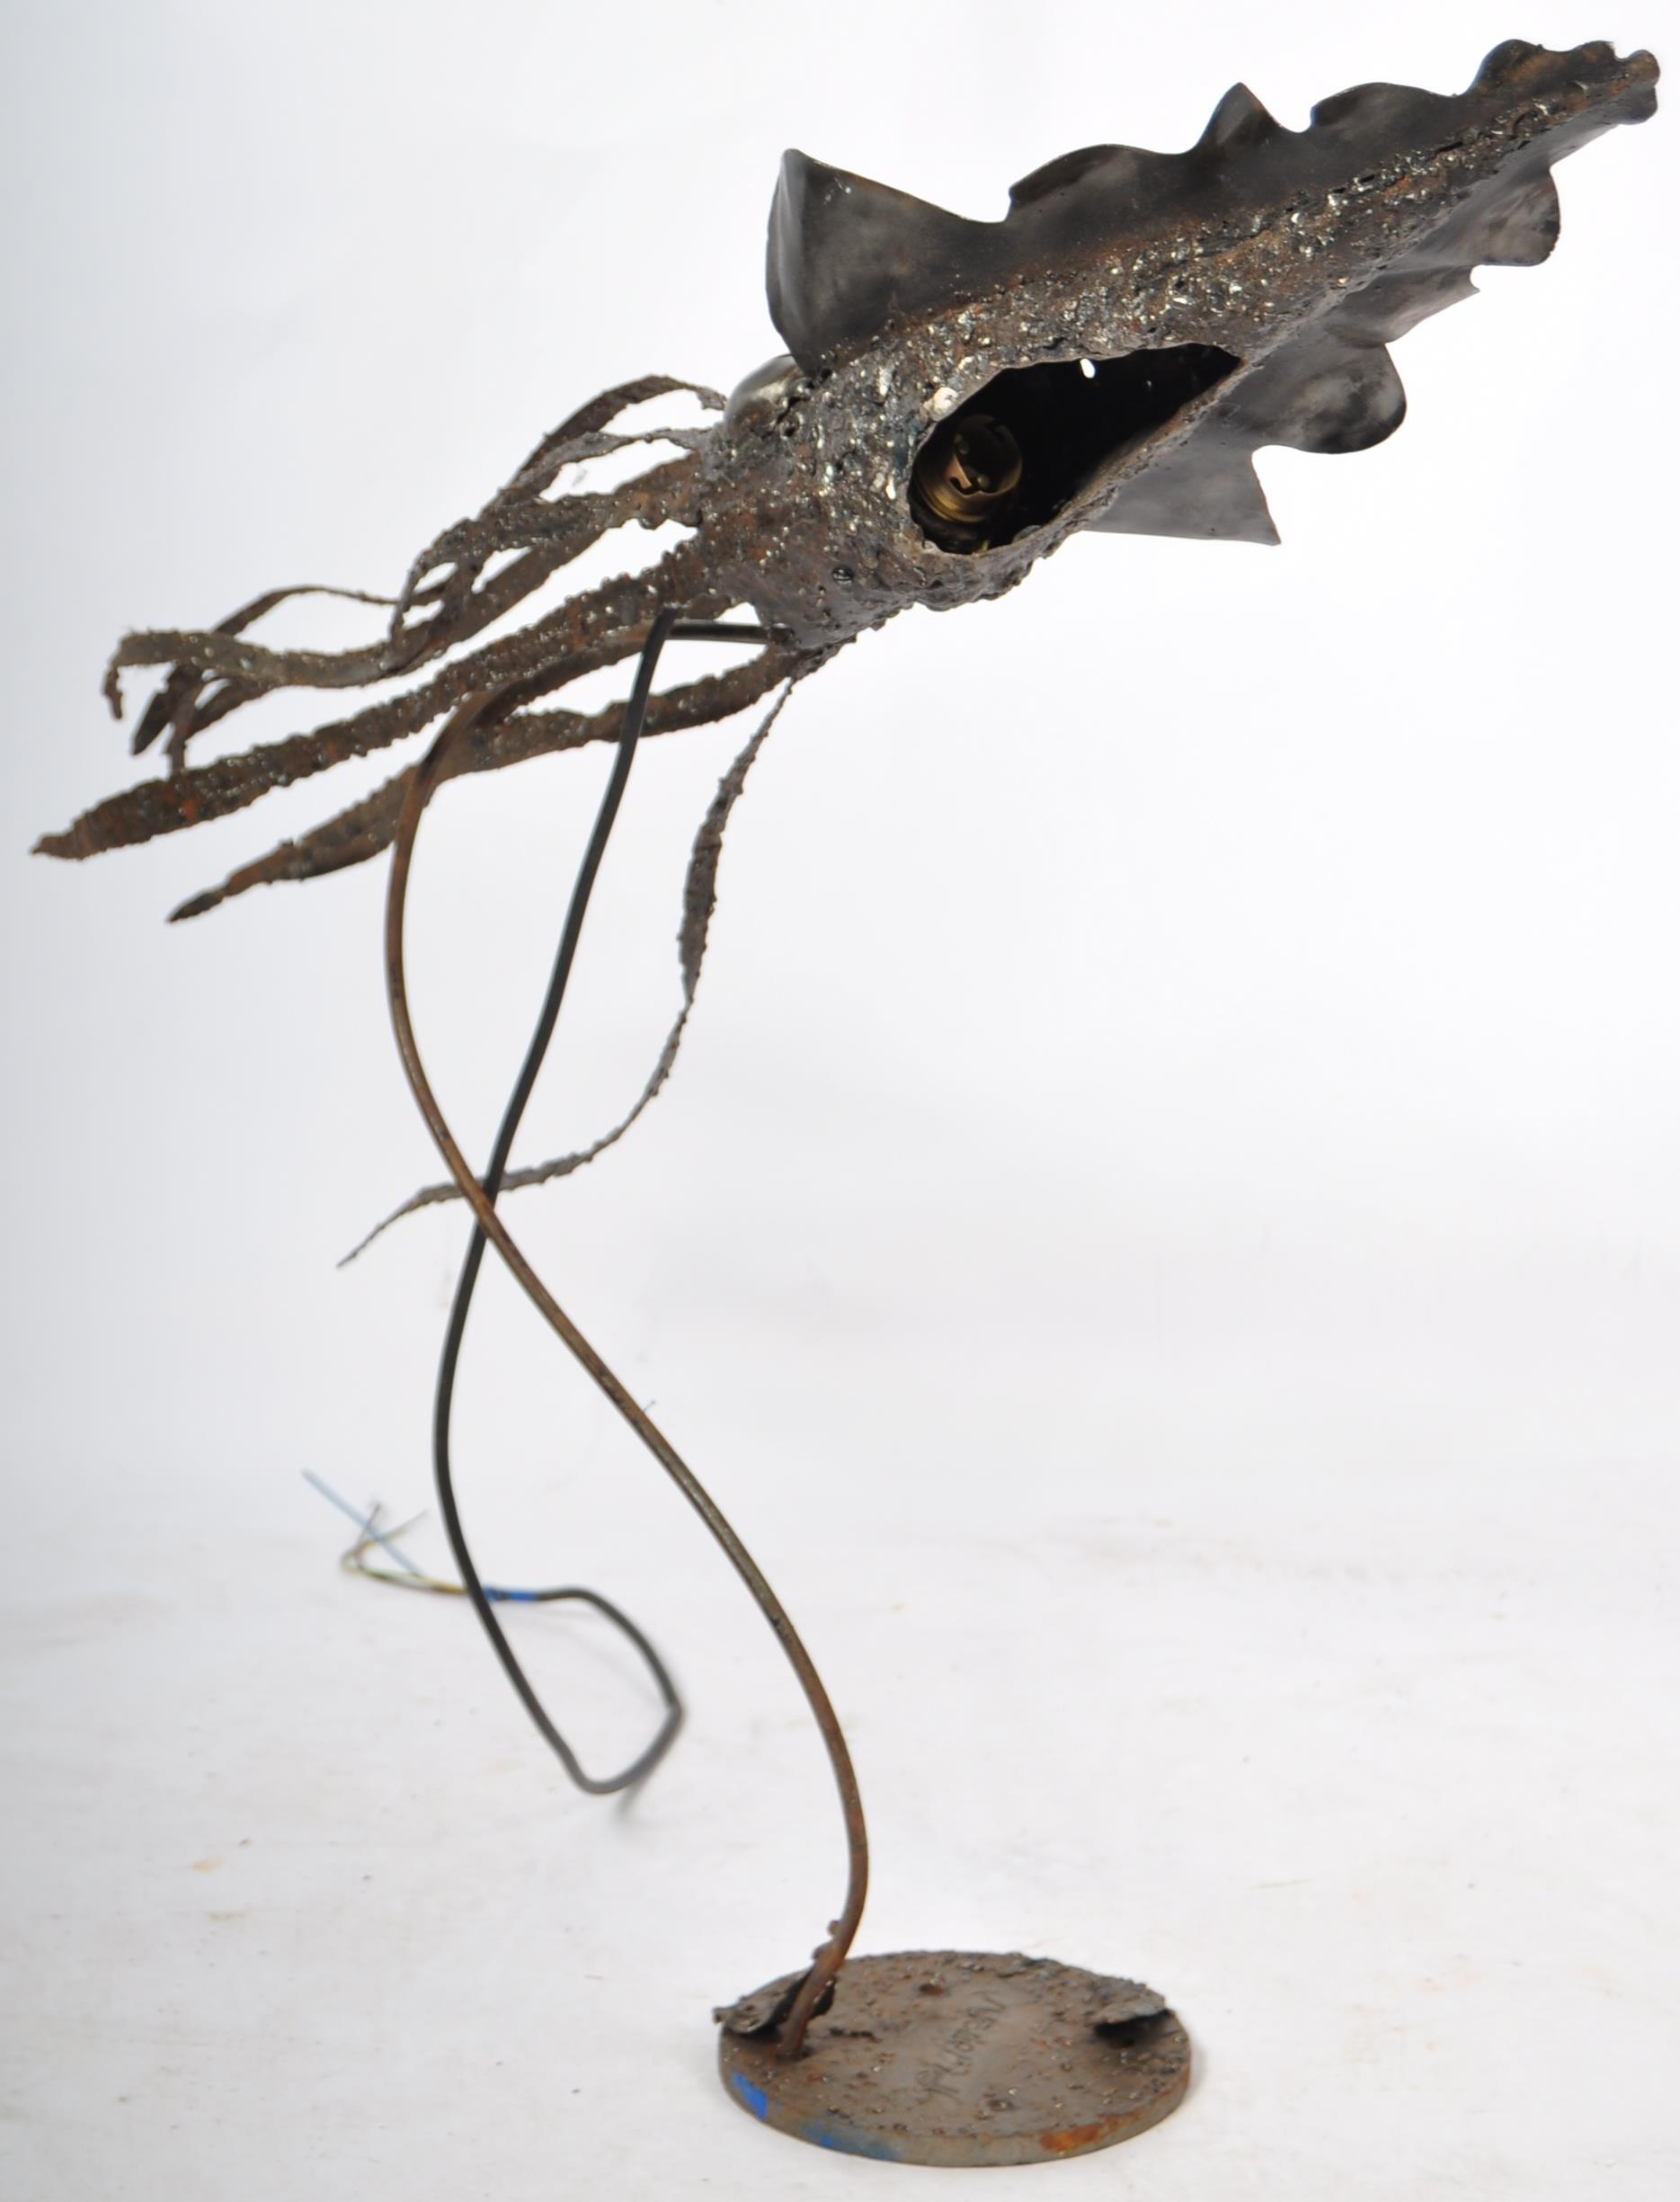 Lot 2 - LARGE 20TH CENTURY METAL SCULPTURE OF A SQUID